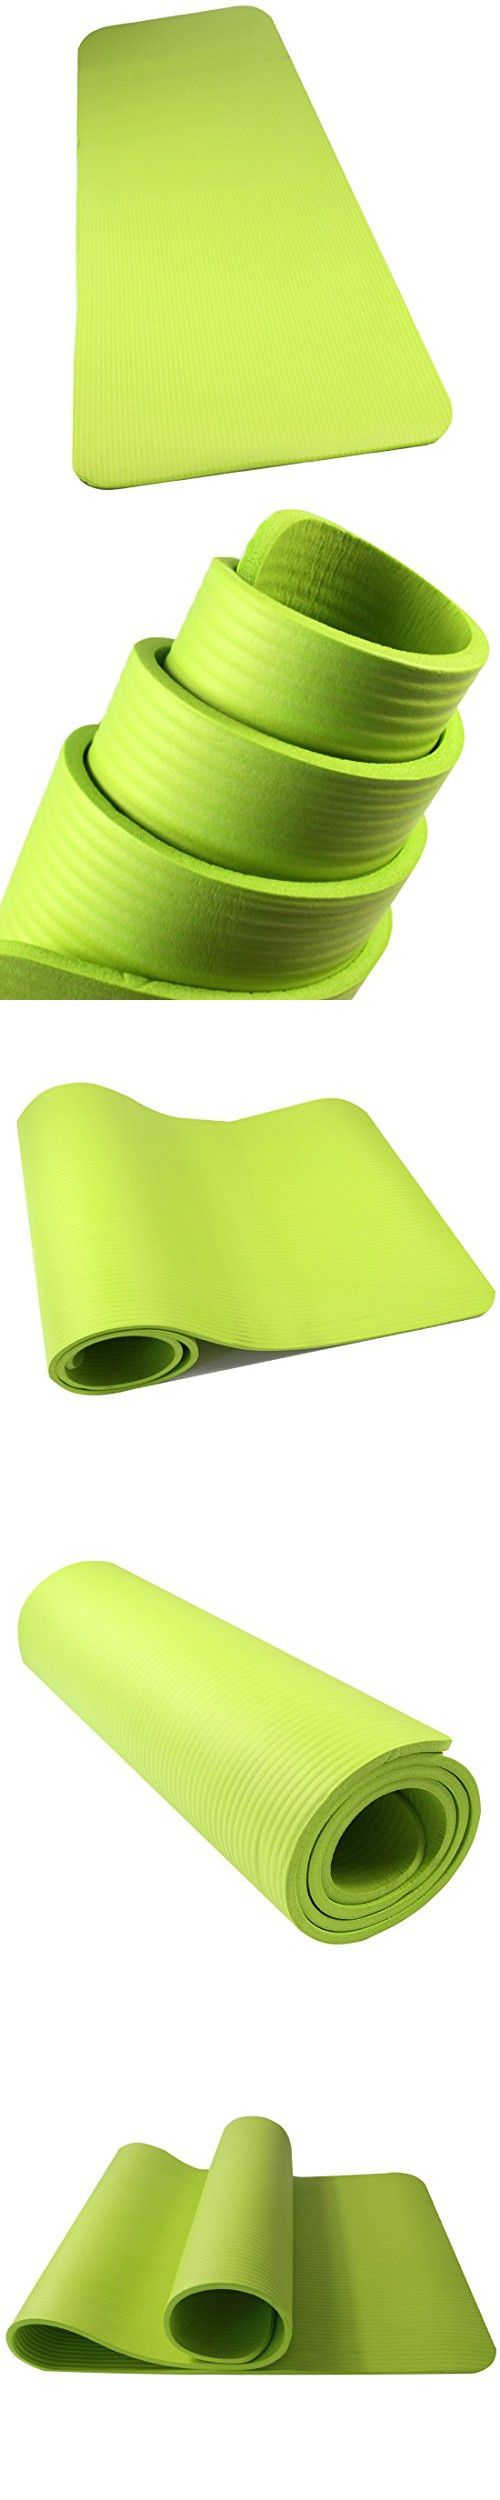 Amyup 1/2-inch Extra Thick 72-inch Long NBR High Density Anti-tear Non-slip Yoga Mat in Color Green, Exercise Mat for Exercise Fitness Pilates